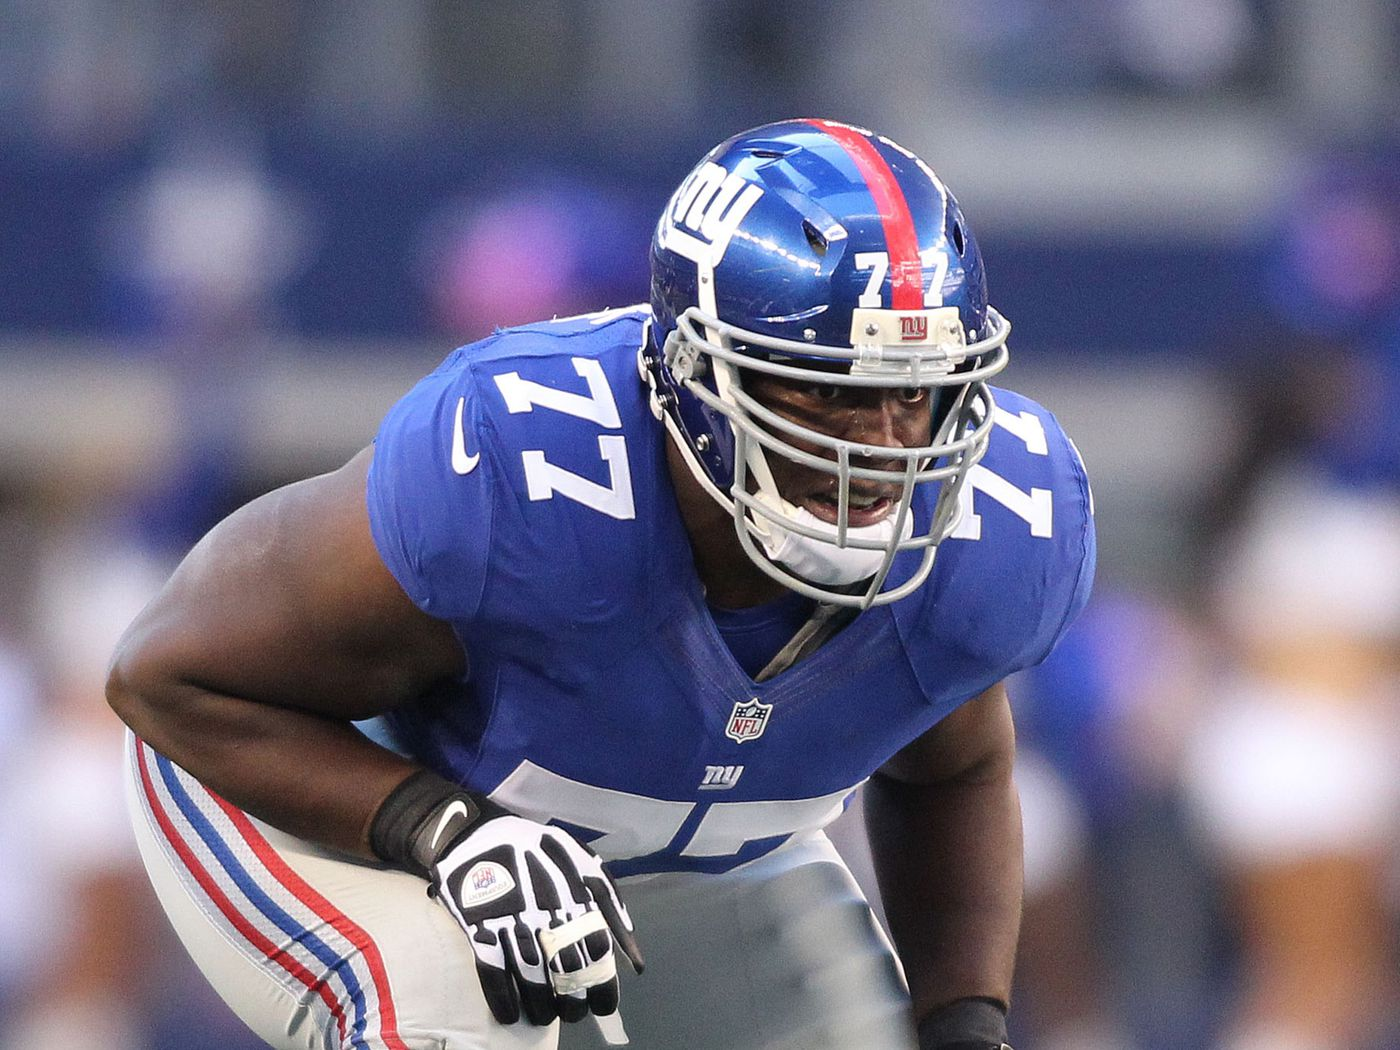 NFL free agent tracker: Giants re-sign Kevin Boothe - SBNation.com